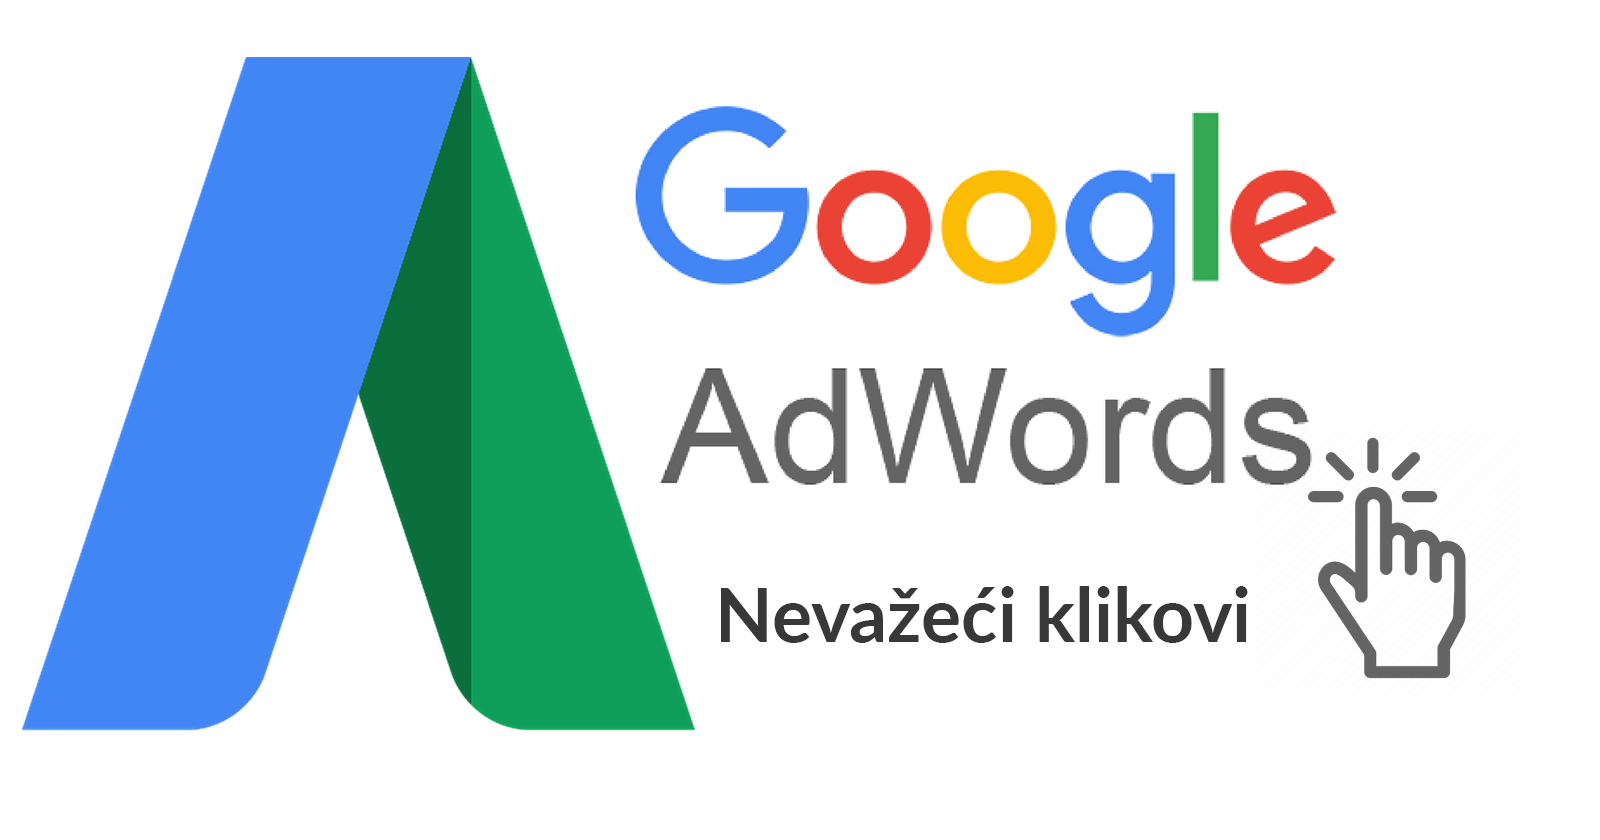 Adwords nevažeći klikovi